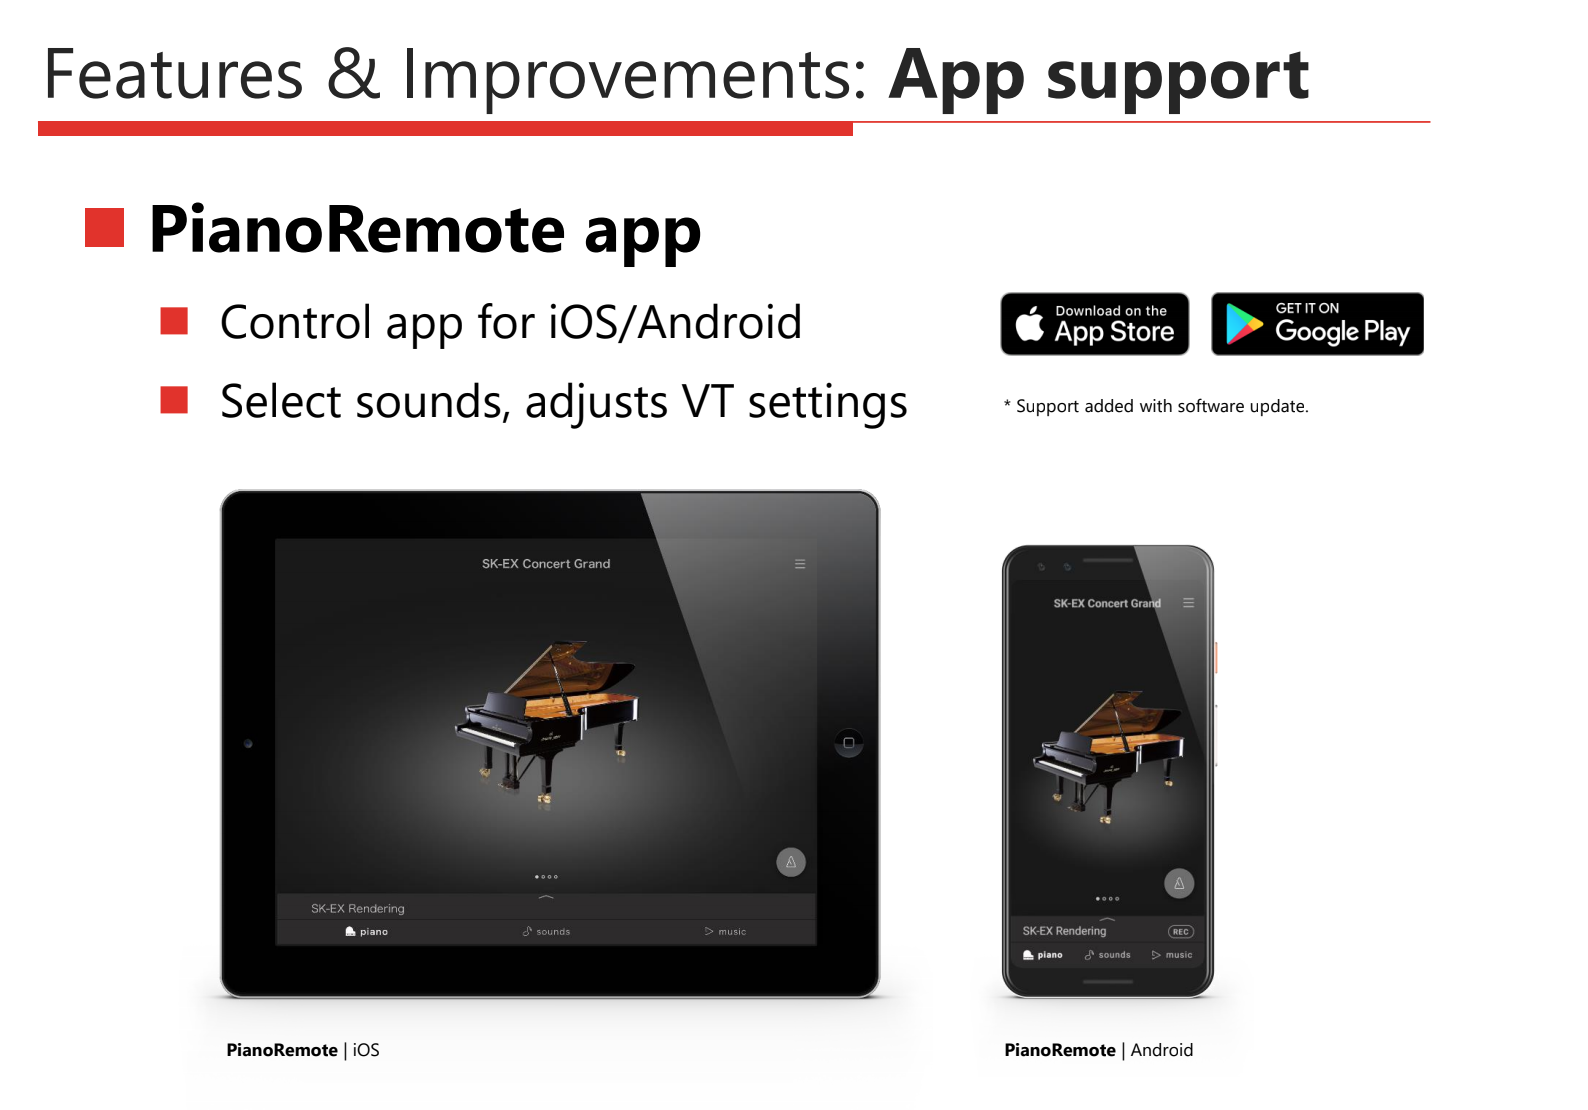 Select and adjust sounds wirelessly for the Kawai CA49 and CA59 digital pianos with the PianoRemote iOS/Android app